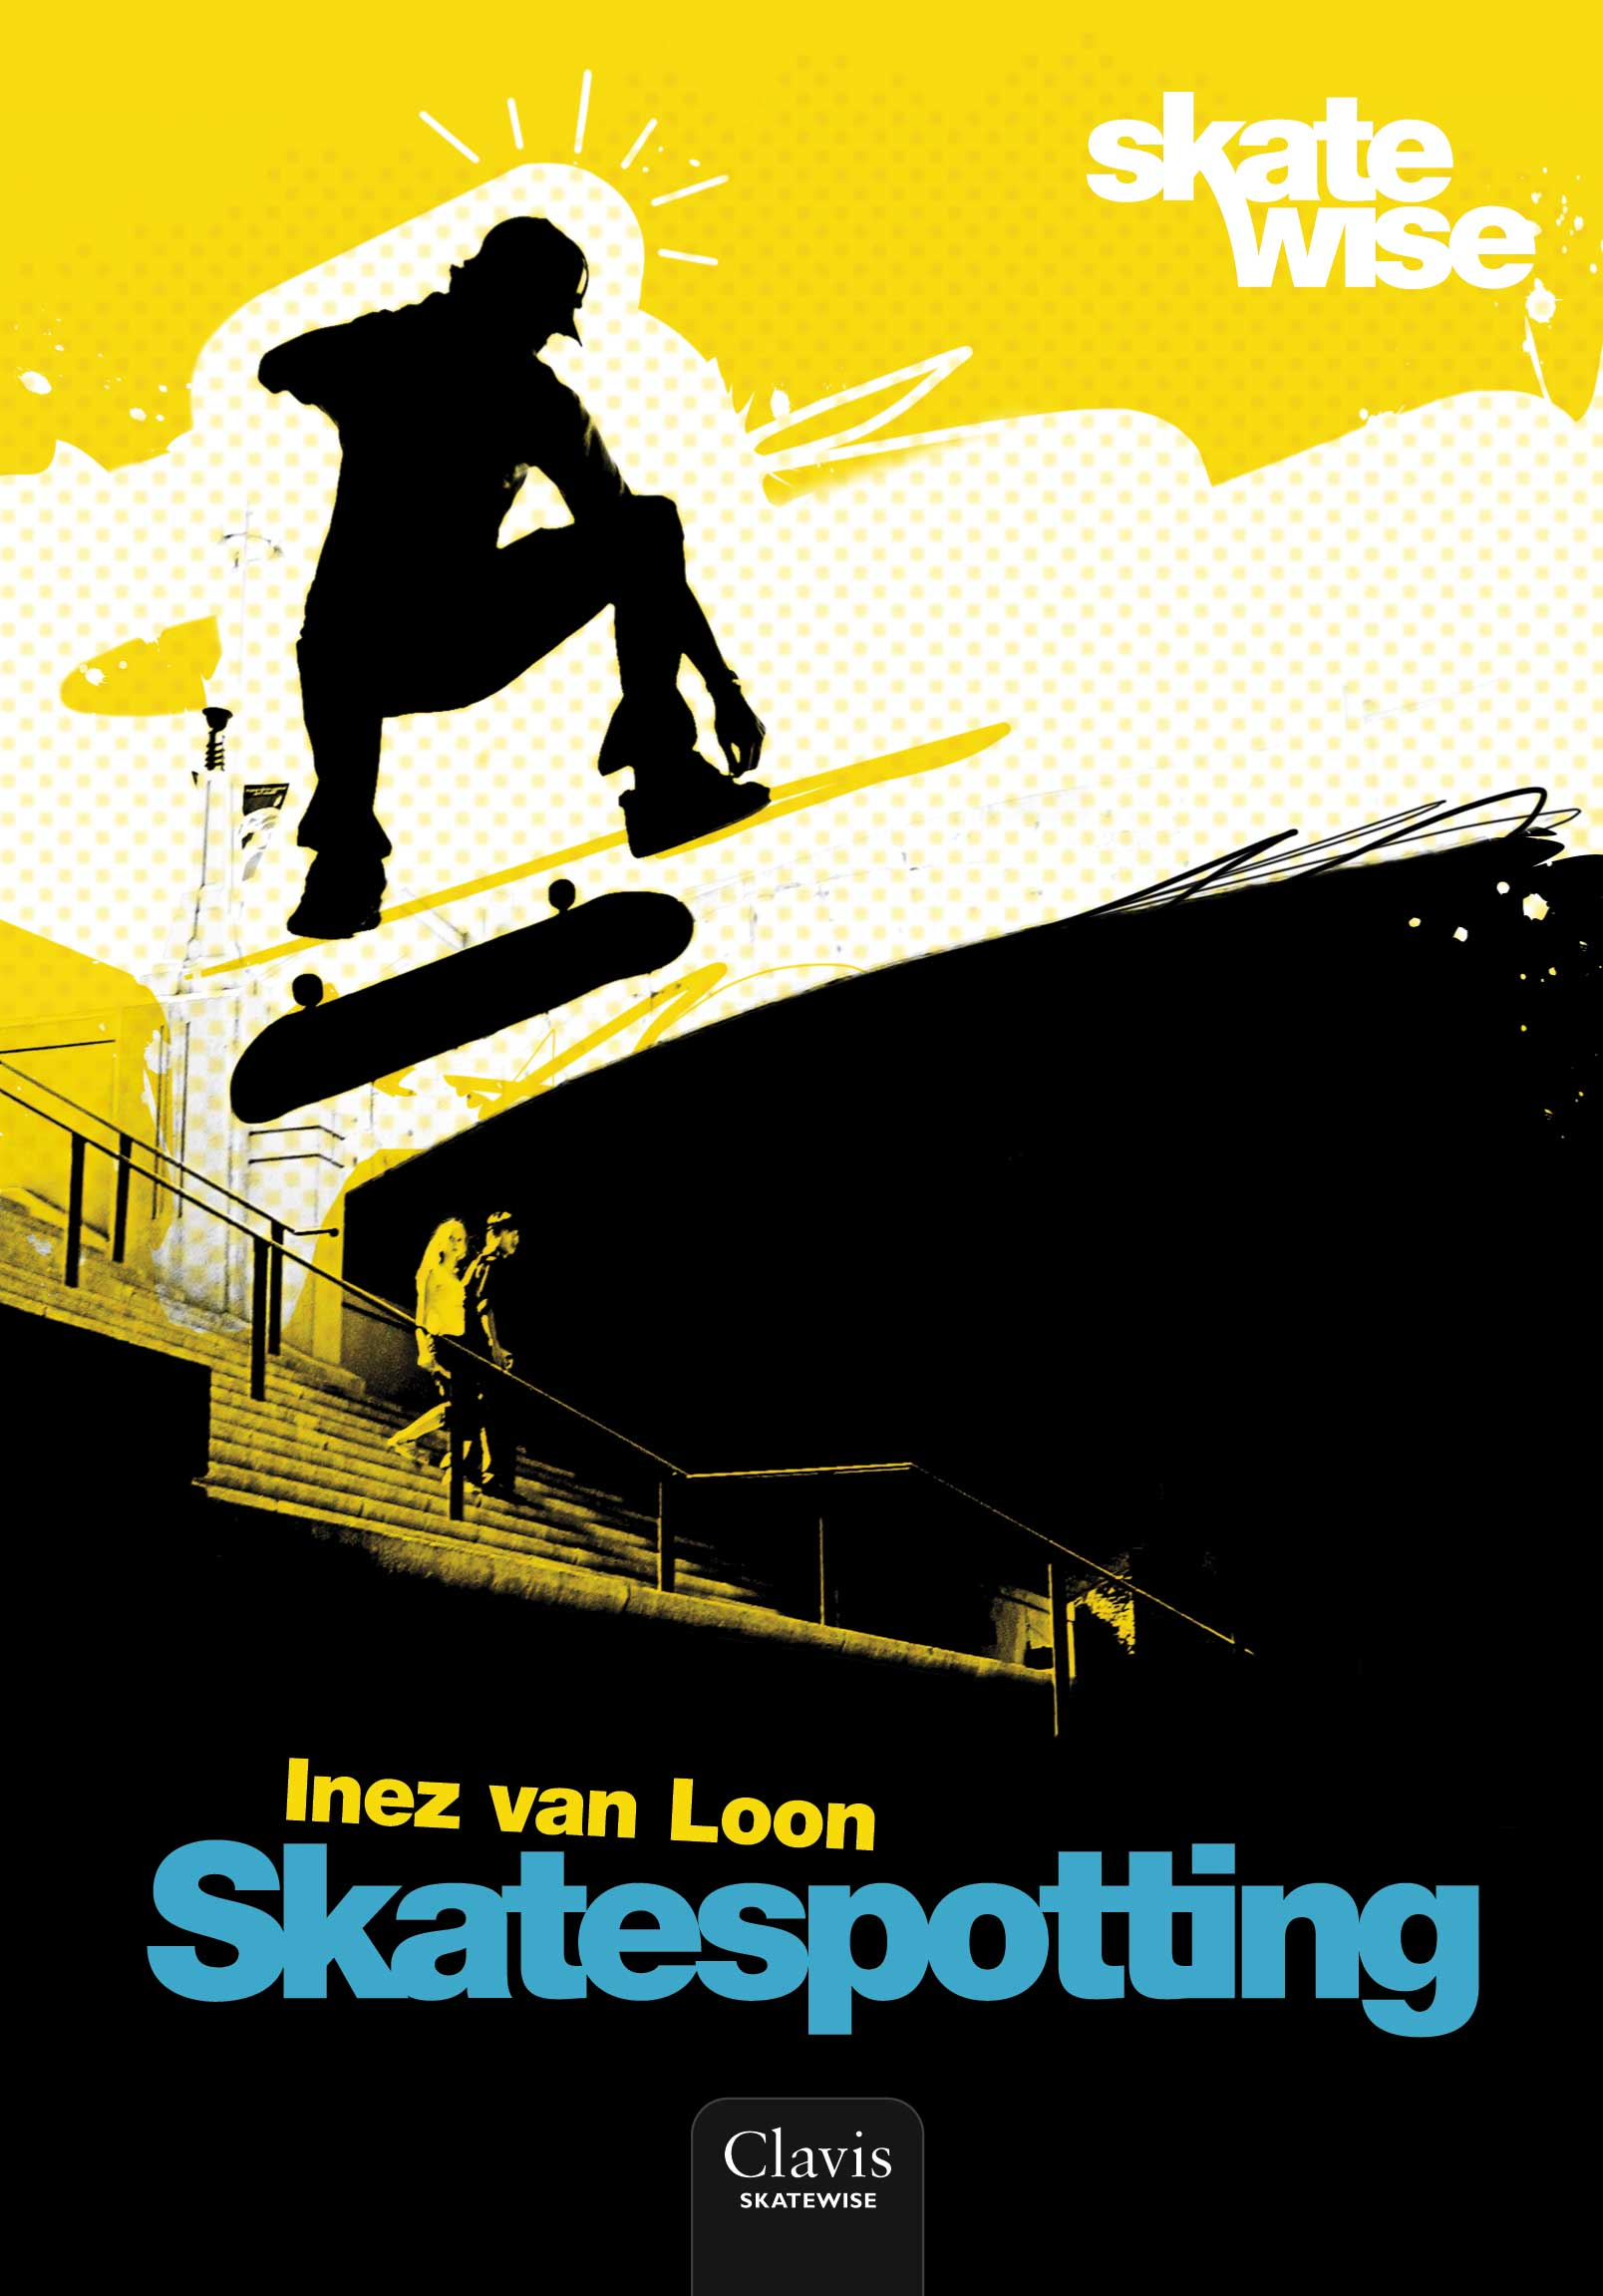 Skatespotting by Clavis Books